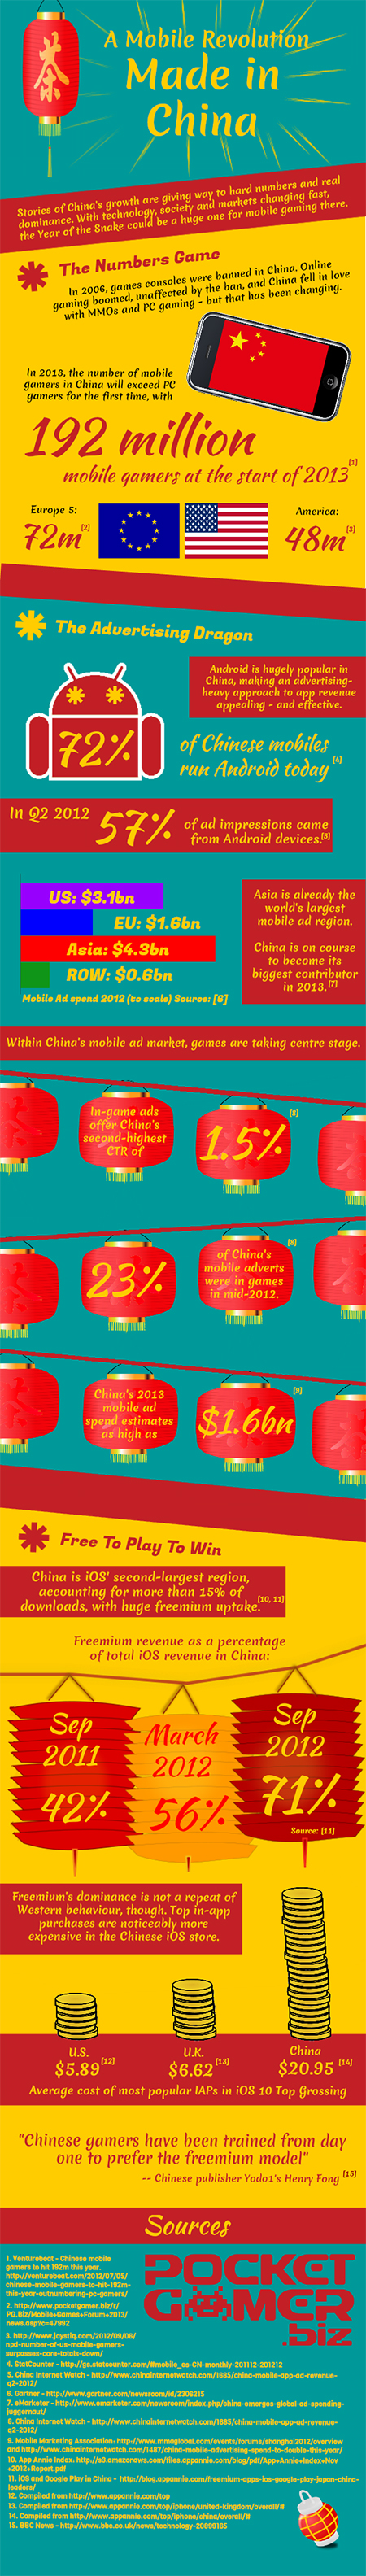 Happy Chinese New Year   INFOGRAPHIC  for Developers wanting to     China Infographic